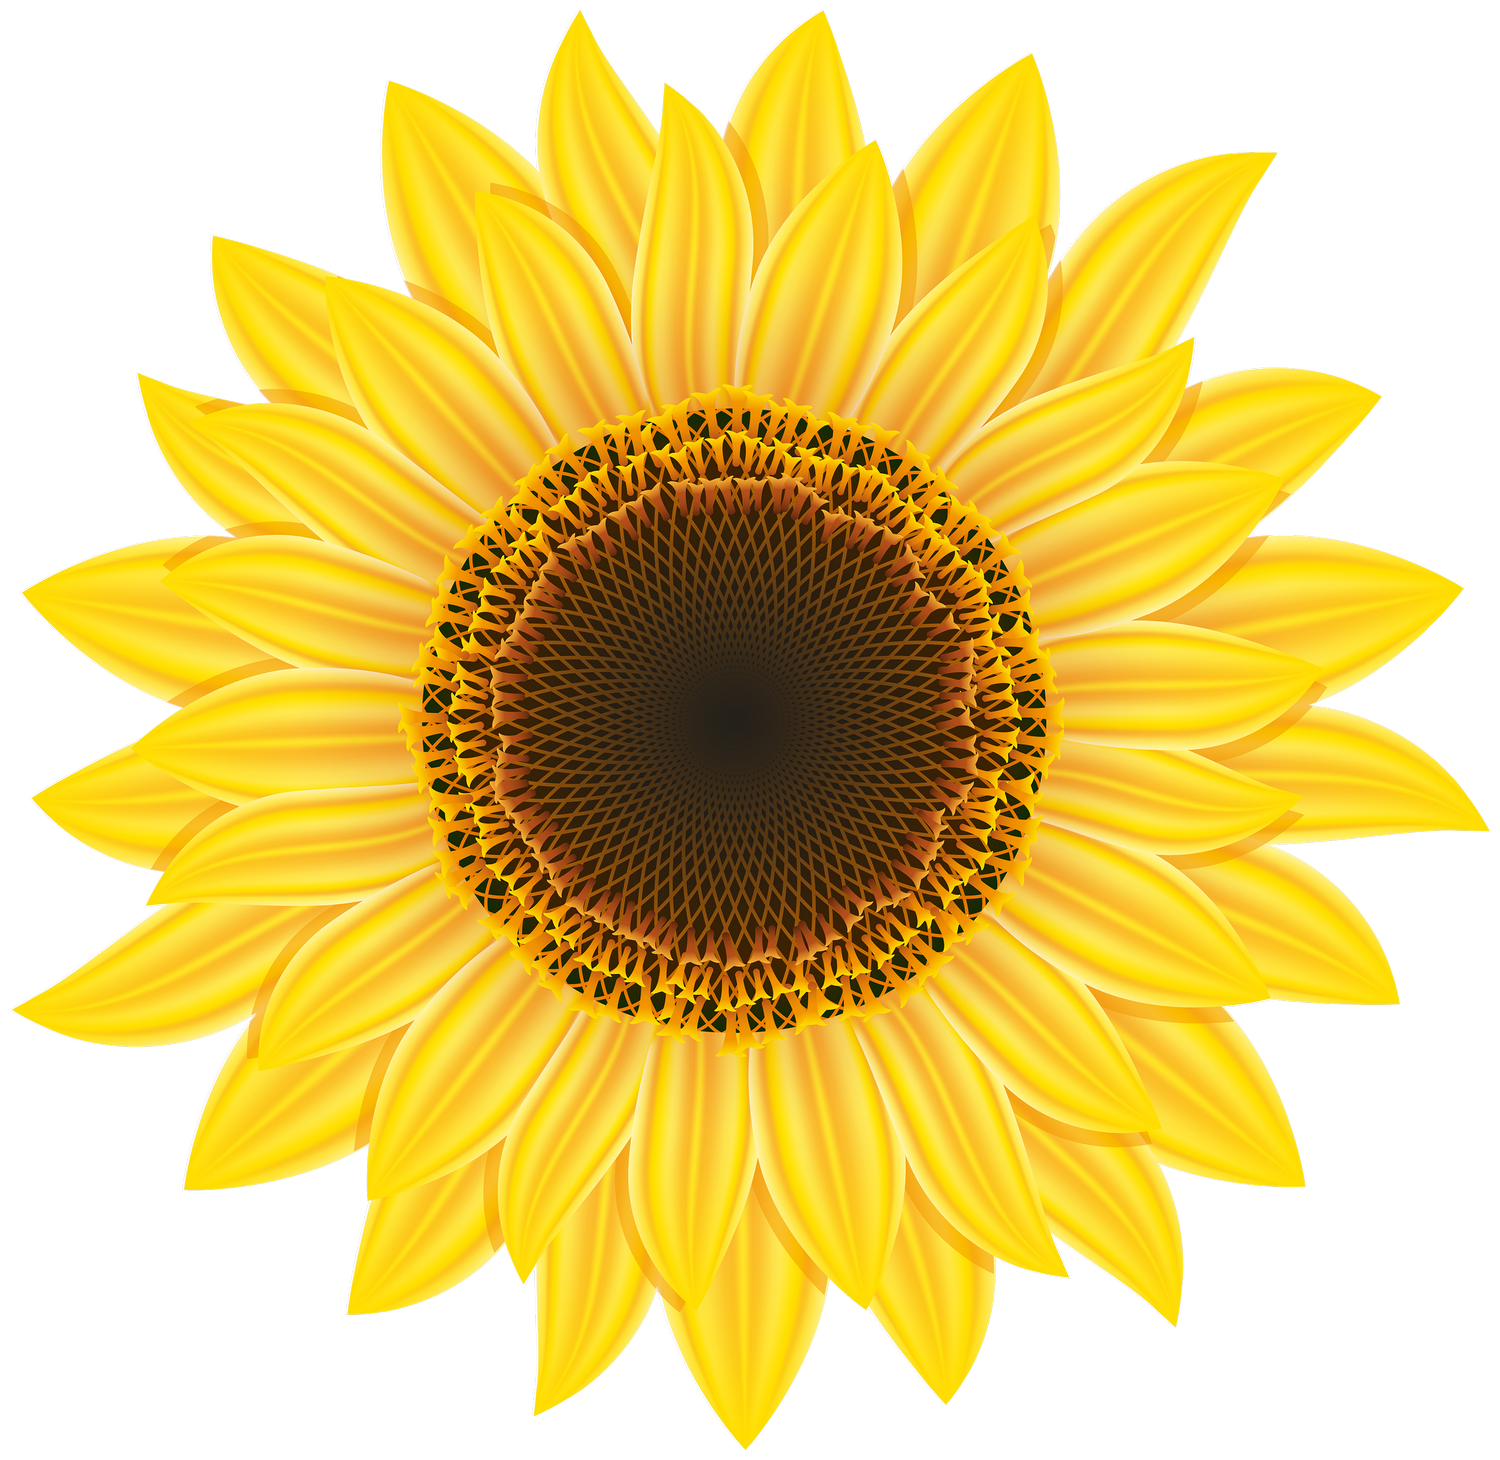 Sunflower PNG Image Sunflower clipart, Sunflower png